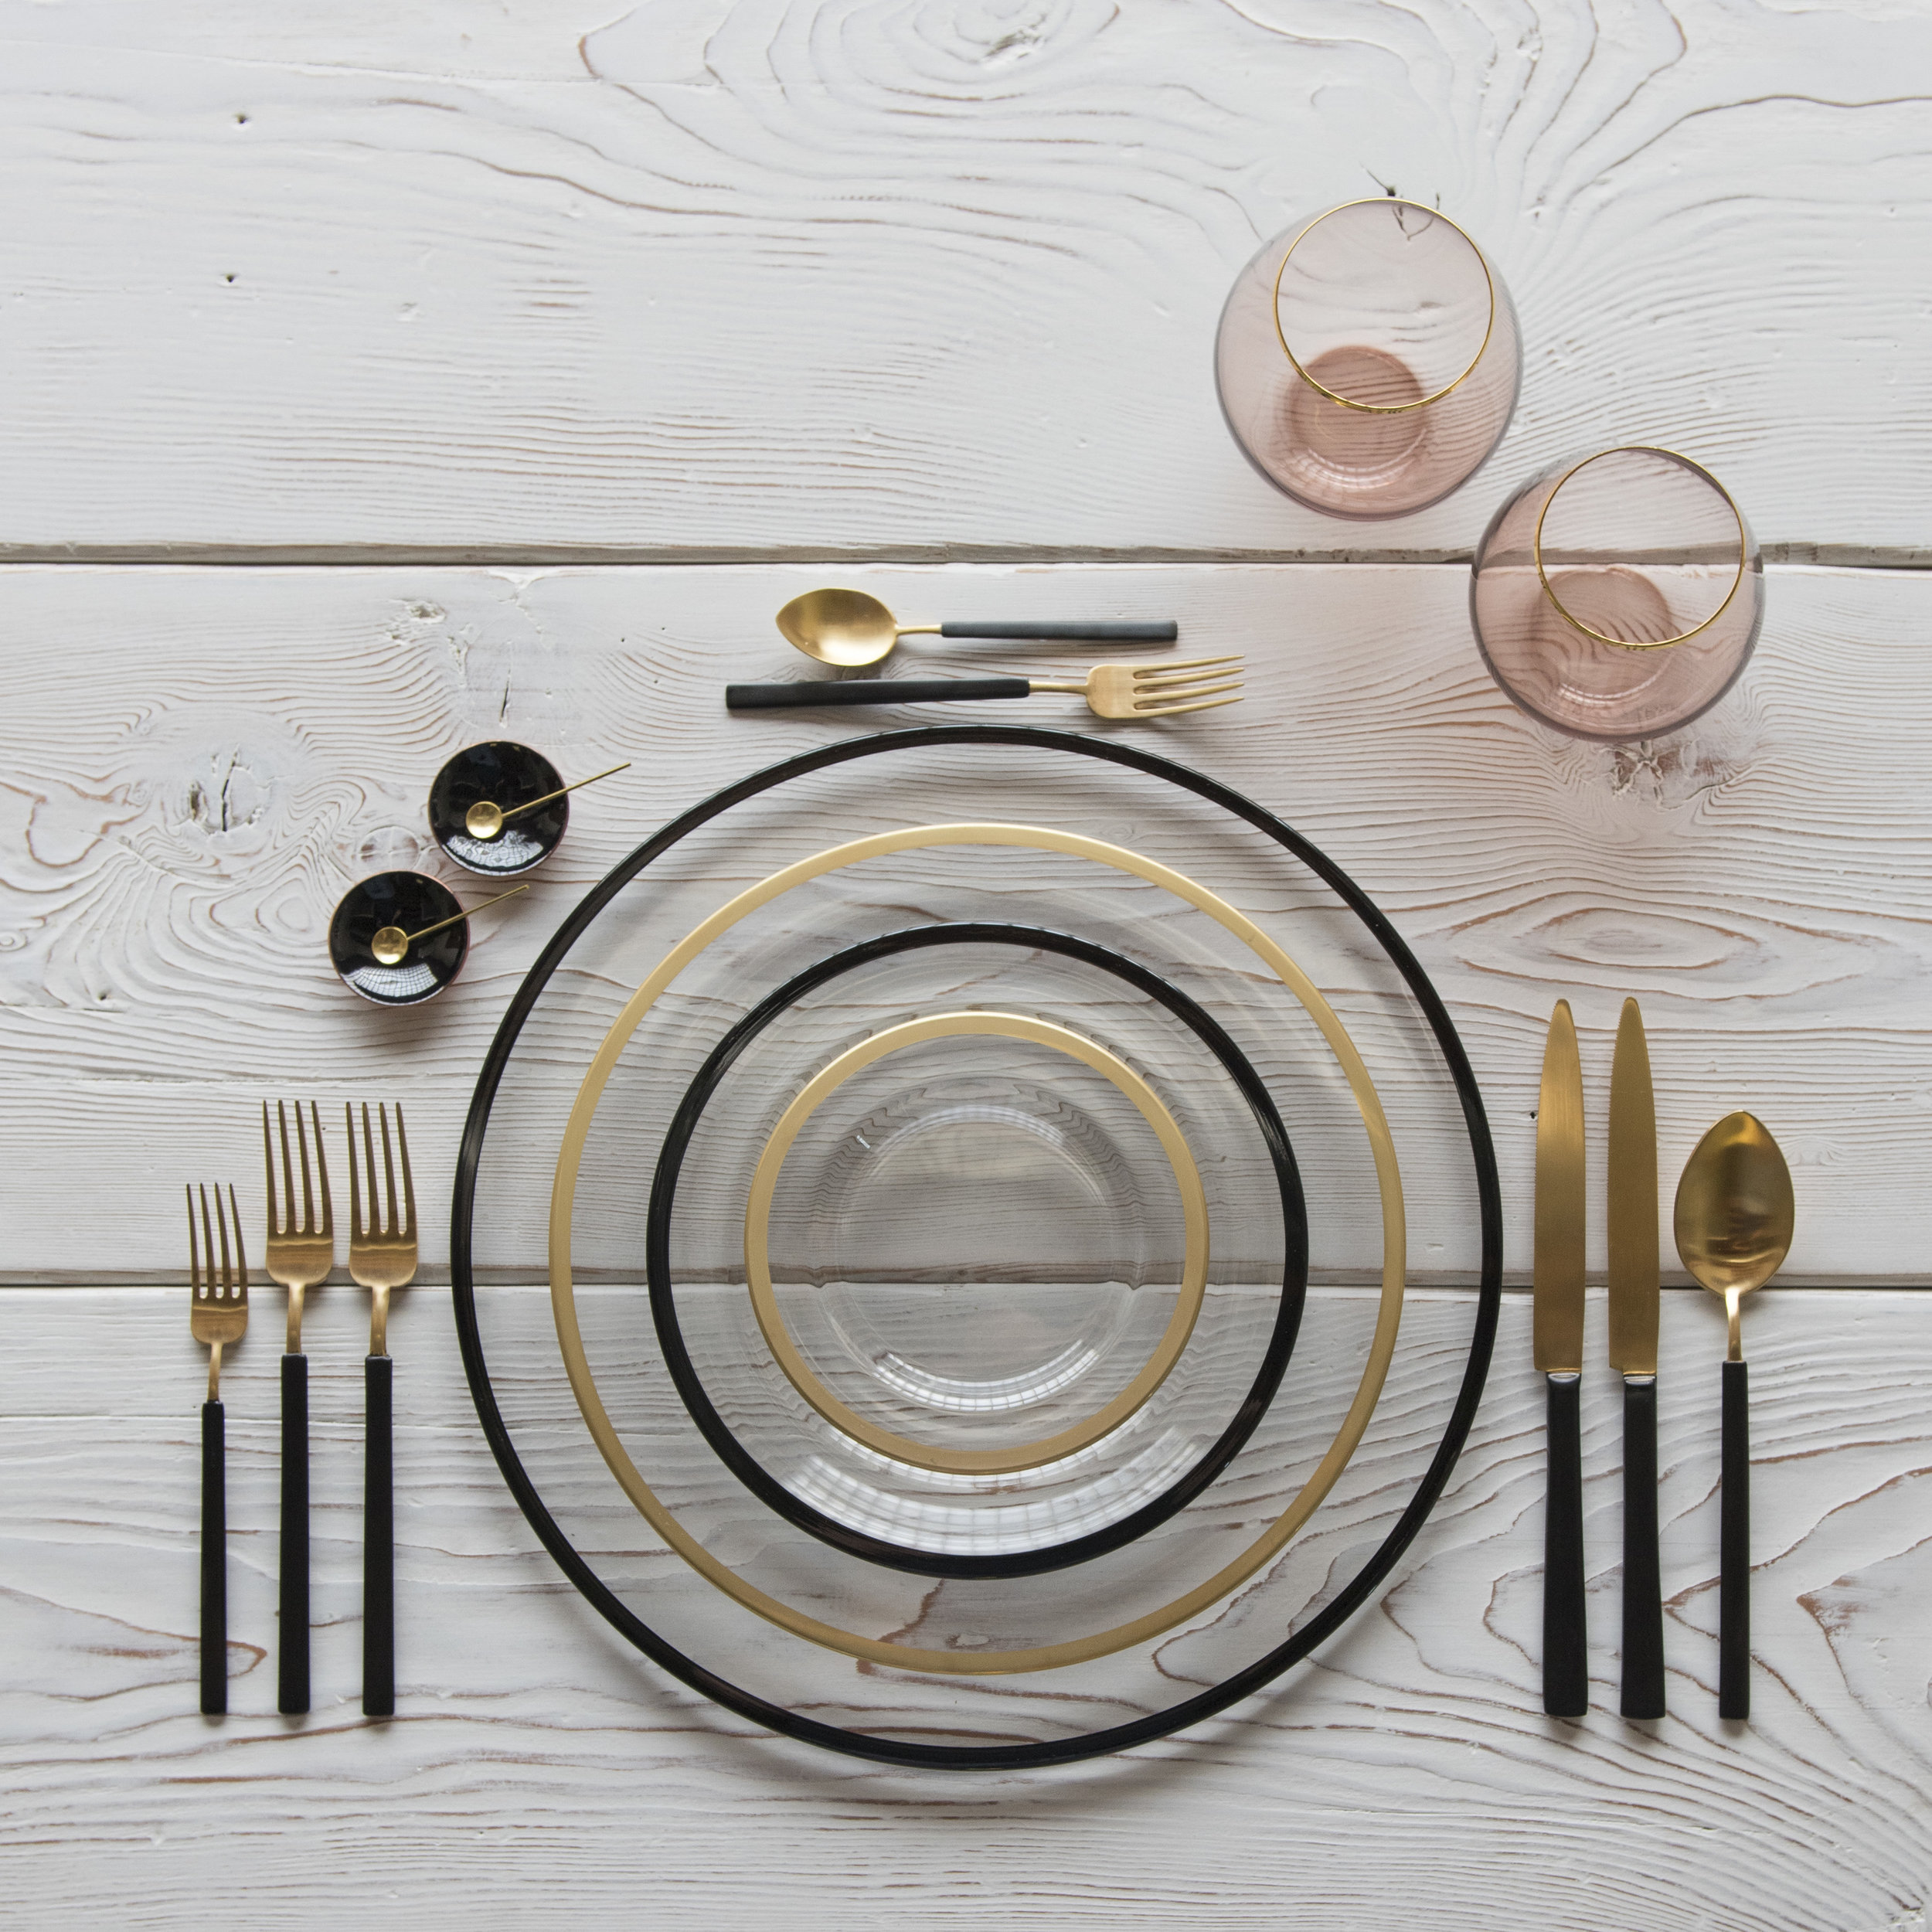 RENT: Halo Glass Chargers/Dinnerware in Black + Halo Glass Dinnerware in 24k Gold + Axel Flatware in Matte 24k Gold/Black + Bella 24k Gold Rimmed Stemless Glassware in Blush + Black Enamel Salt Cellars + Tiny Gold Spoons  SHOP: Halo Glass Chargers/Dinnerware in Black + Halo Glass Dinnerware in 24k Gold + Bella 24k Gold Rimmed Stemless Glassware in Blush + Black Enamel Salt Cellars + Tiny Gold Spoons